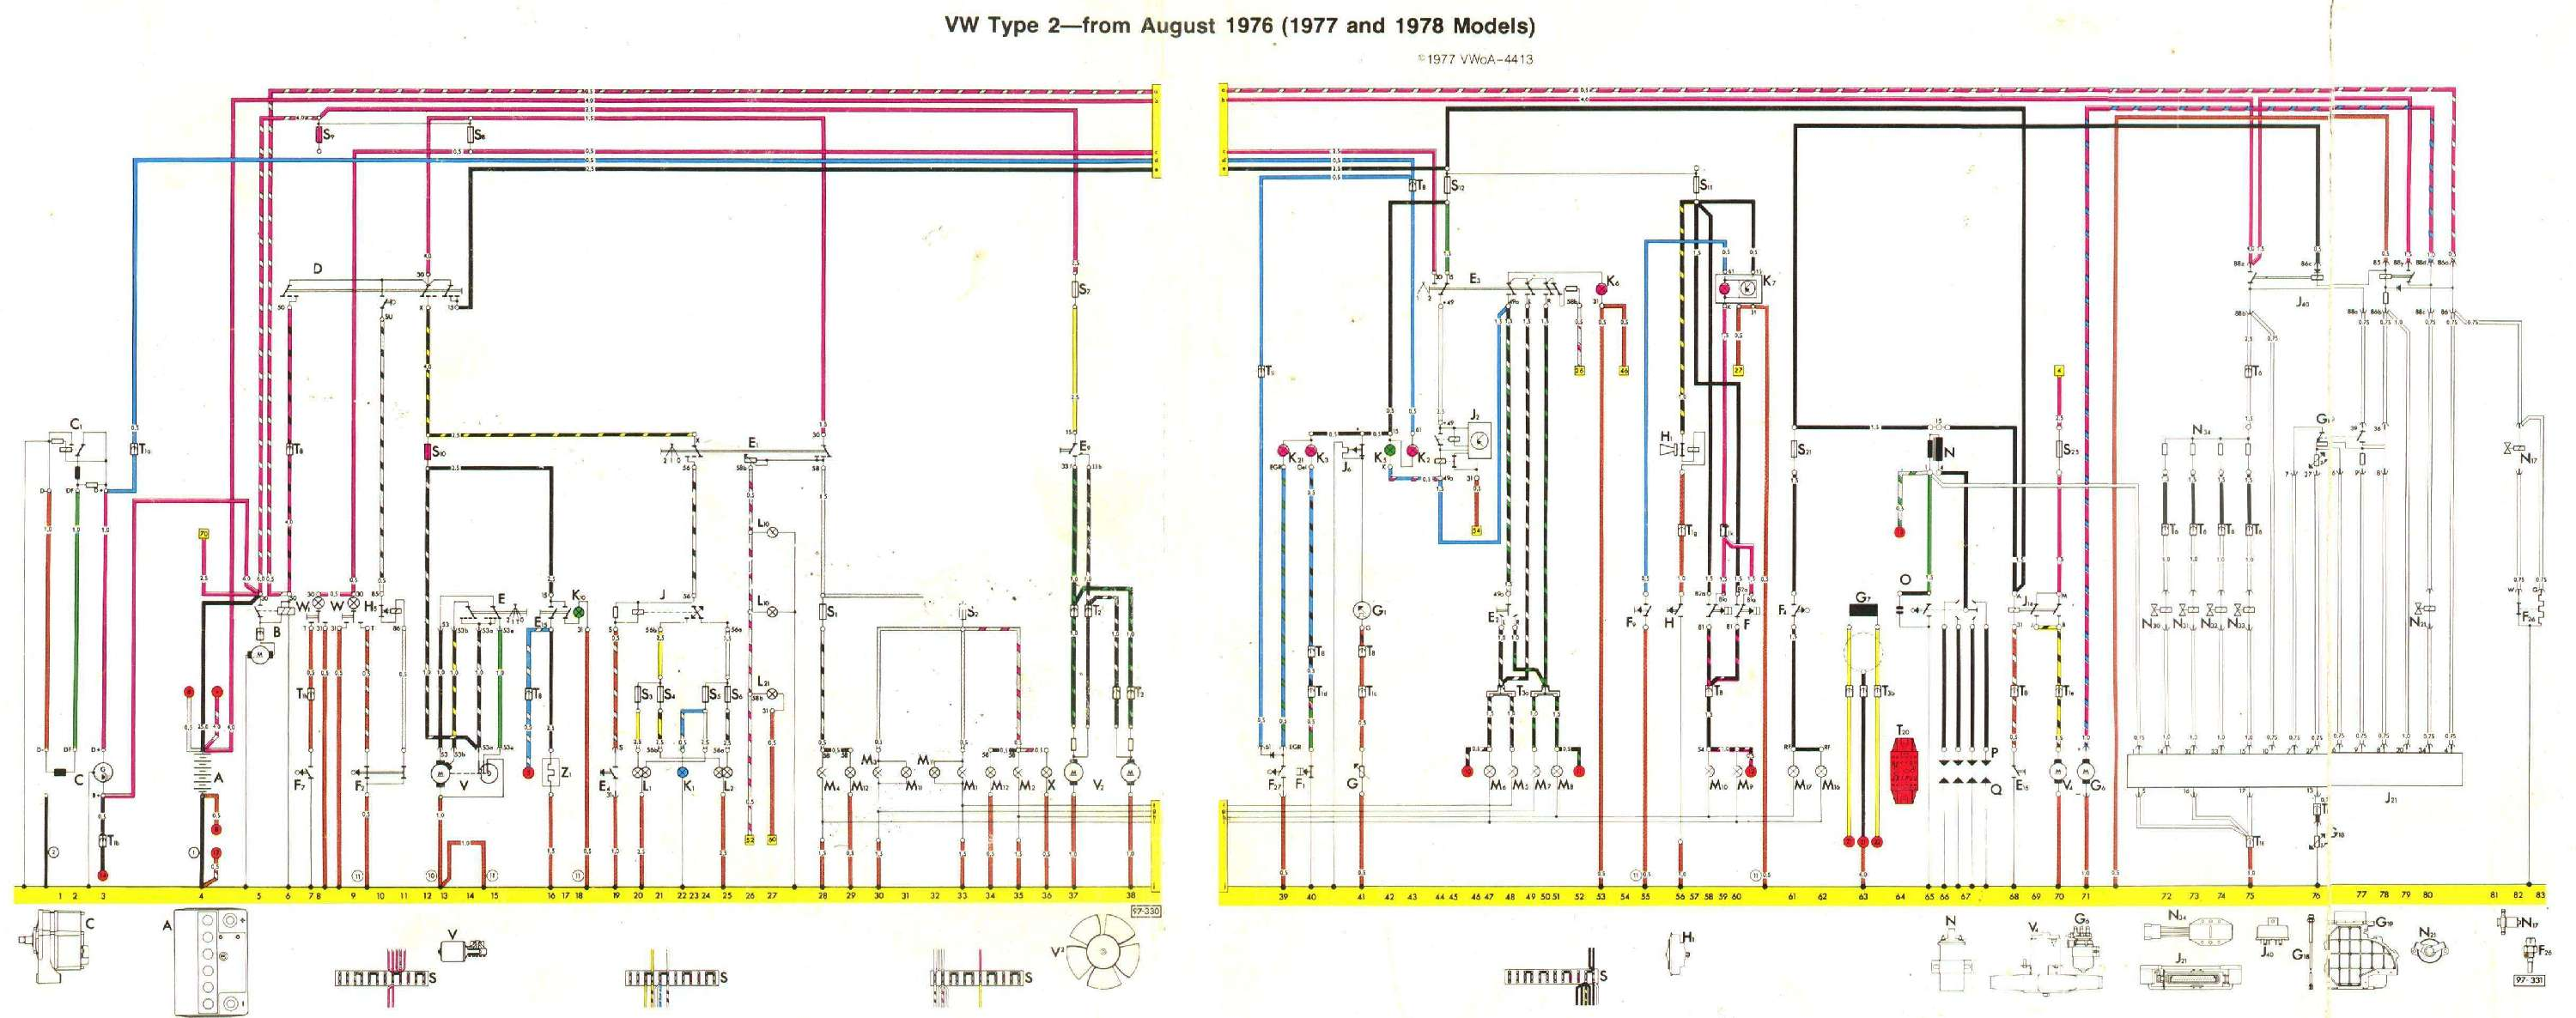 Rover 75 Fuse Box Layout Wiring Library 2011 Audi A8 Engine Diagram August 1975 1976 1977 And 1978 Models